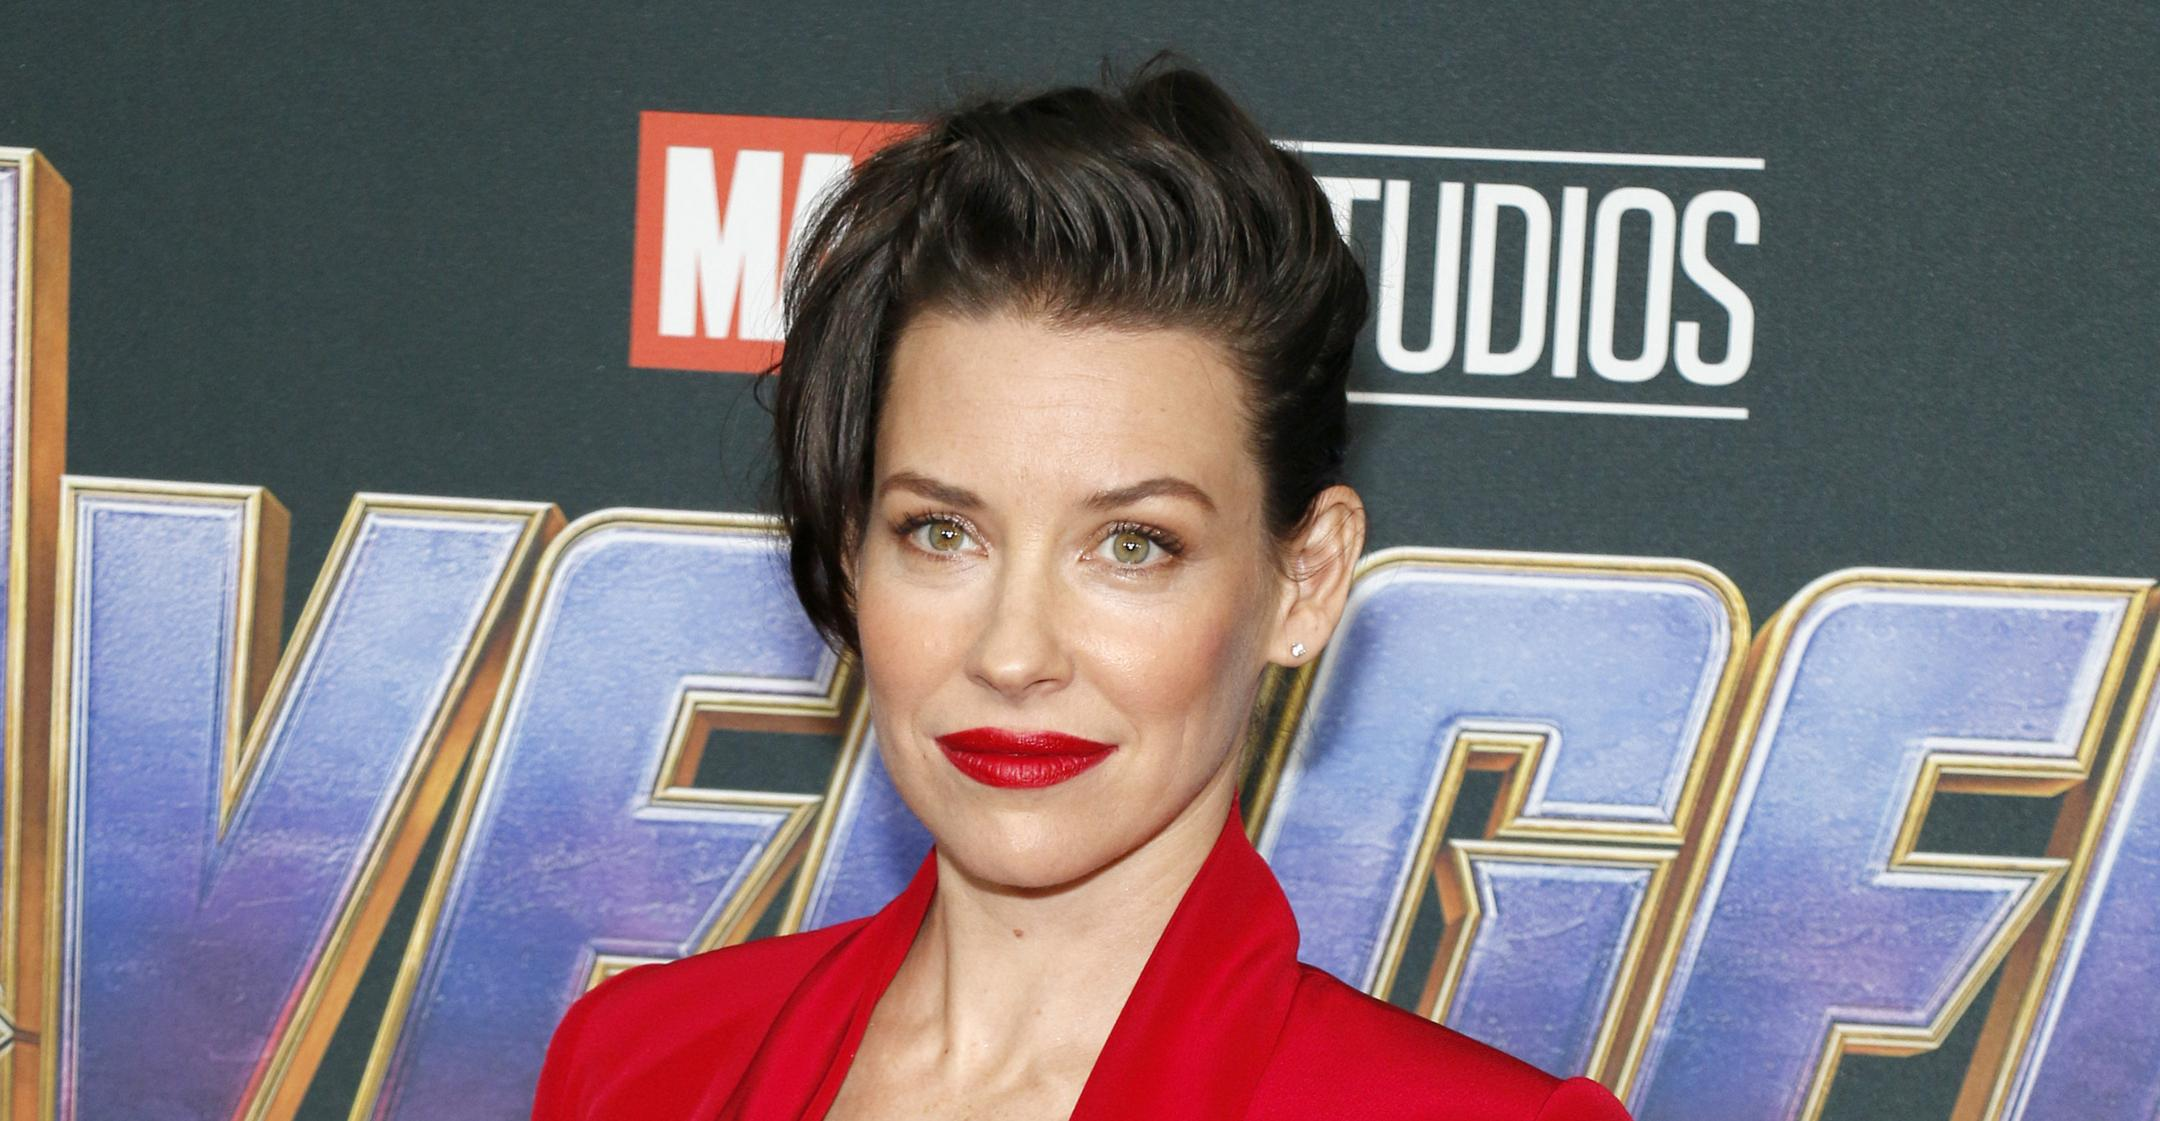 evangeline lilly tells women to embrace their bodies no matter the shape